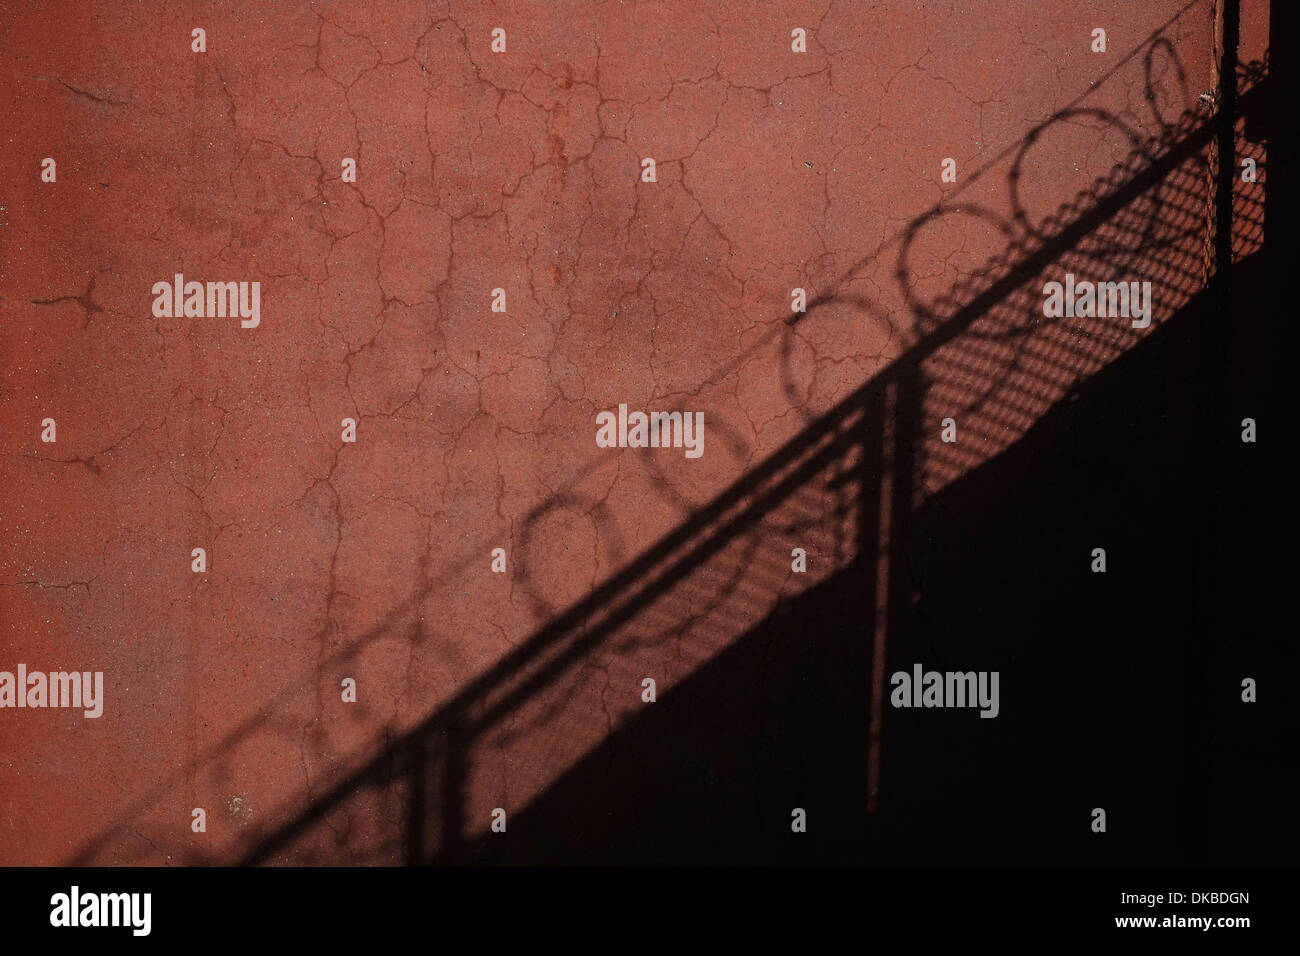 The shadow of a barbed wire fence against an old cracked wall. - Stock Image